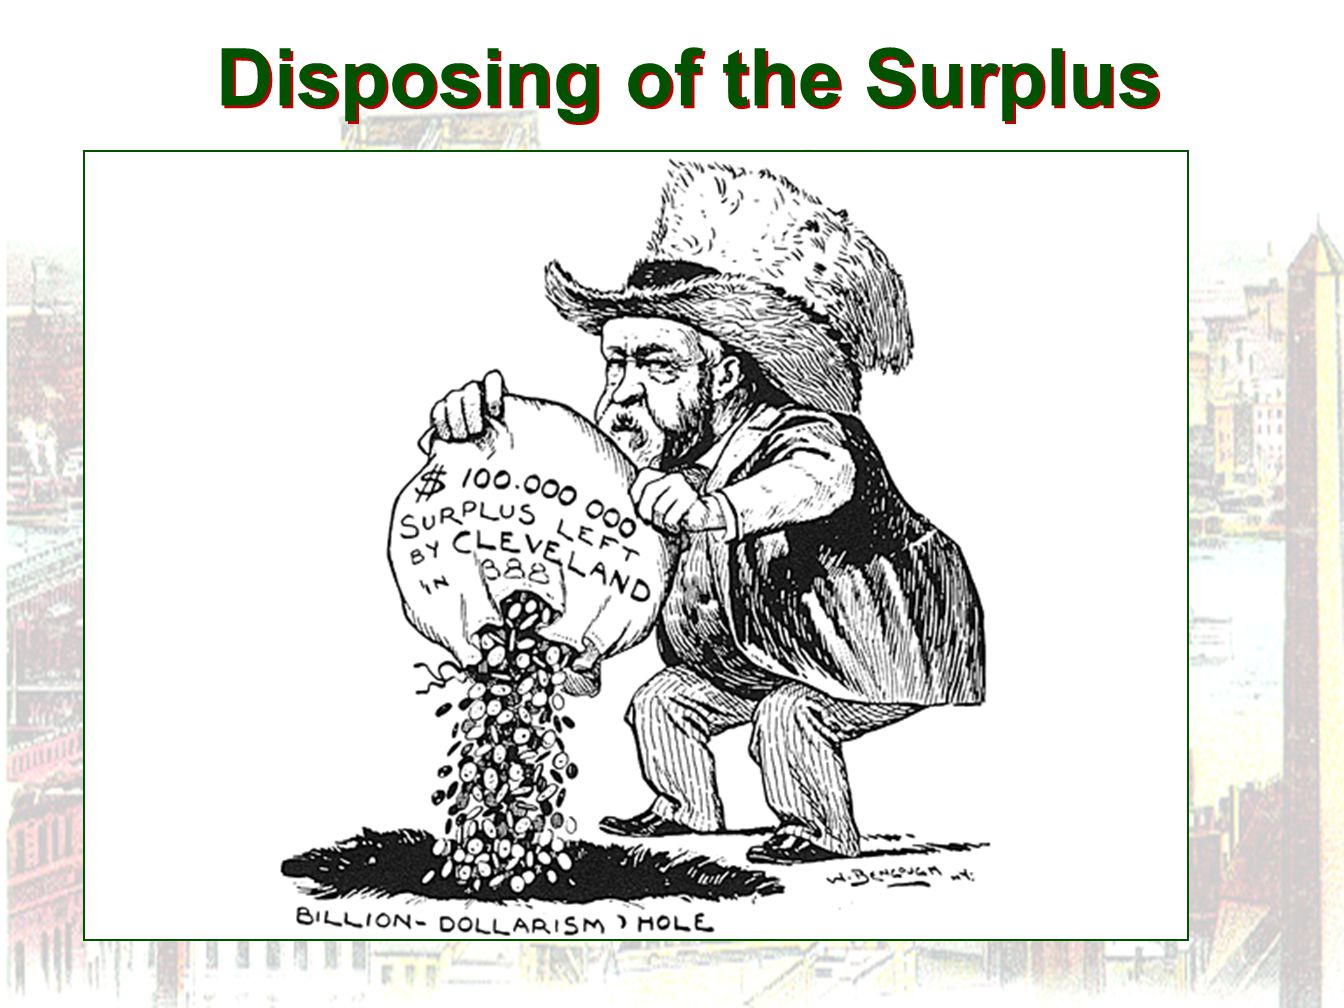 Disposing of the Surplus